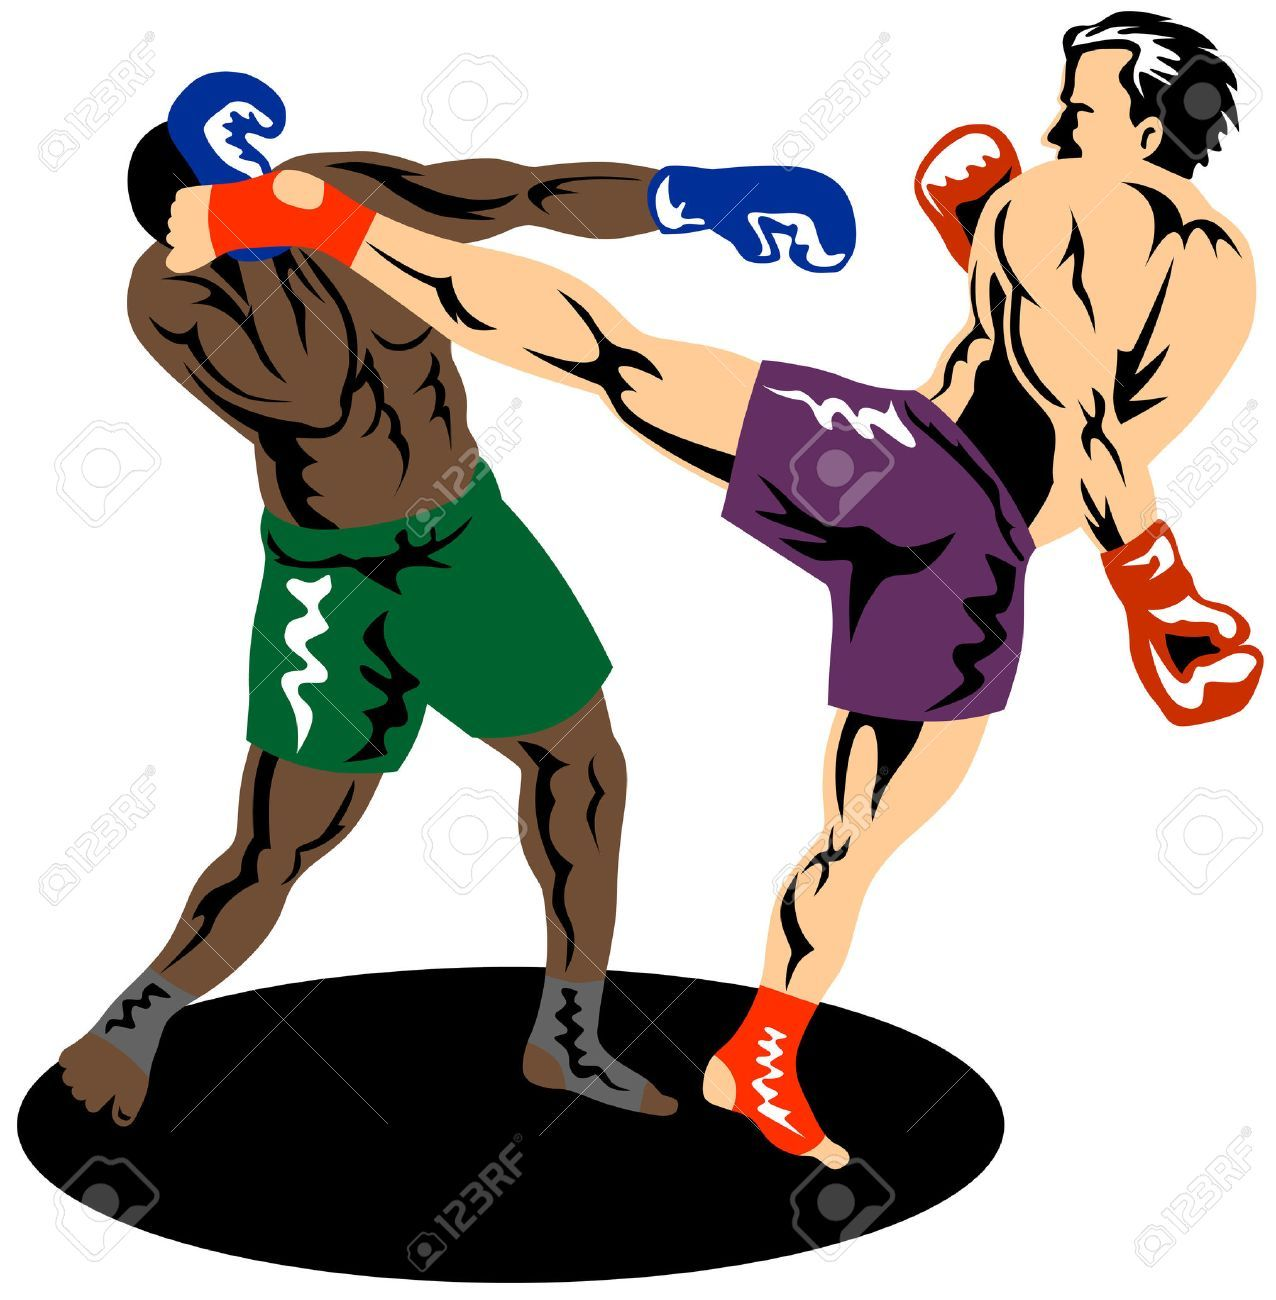 Kick boxing clipart clipart library library Clipart kick boxing 8 » Clipart Portal clipart library library